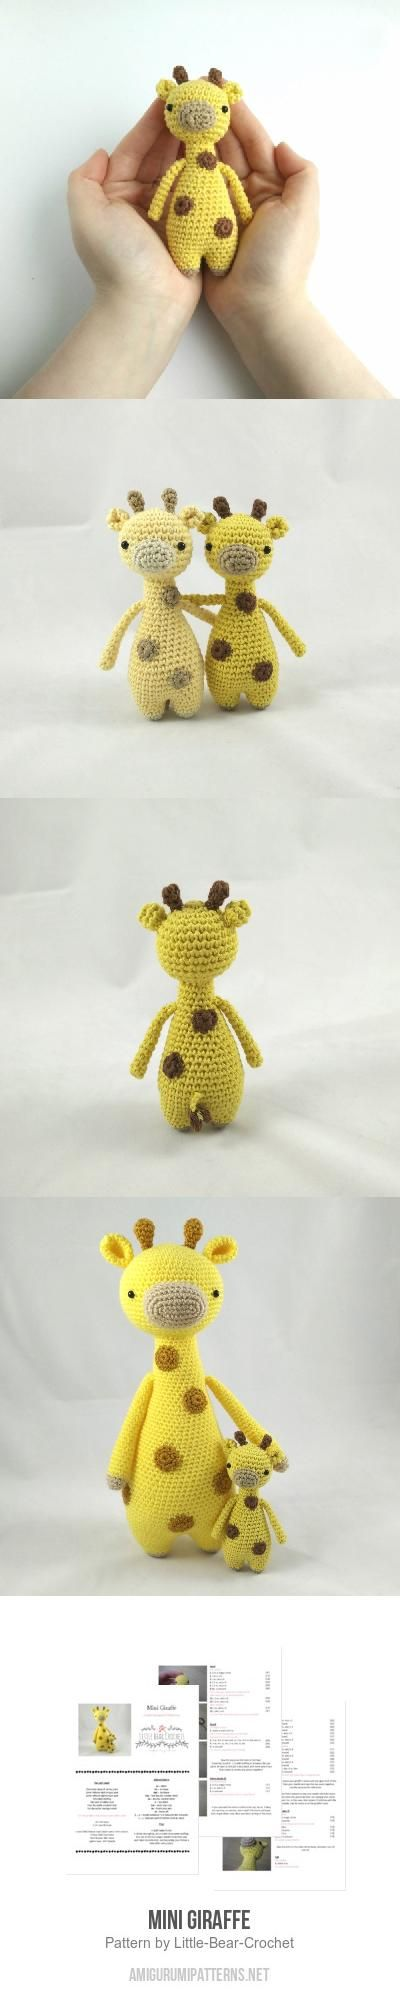 Amigurumi Hello Kitty Collection 1 : 25+ beste idee?n over Giraffe haken op Pinterest ...